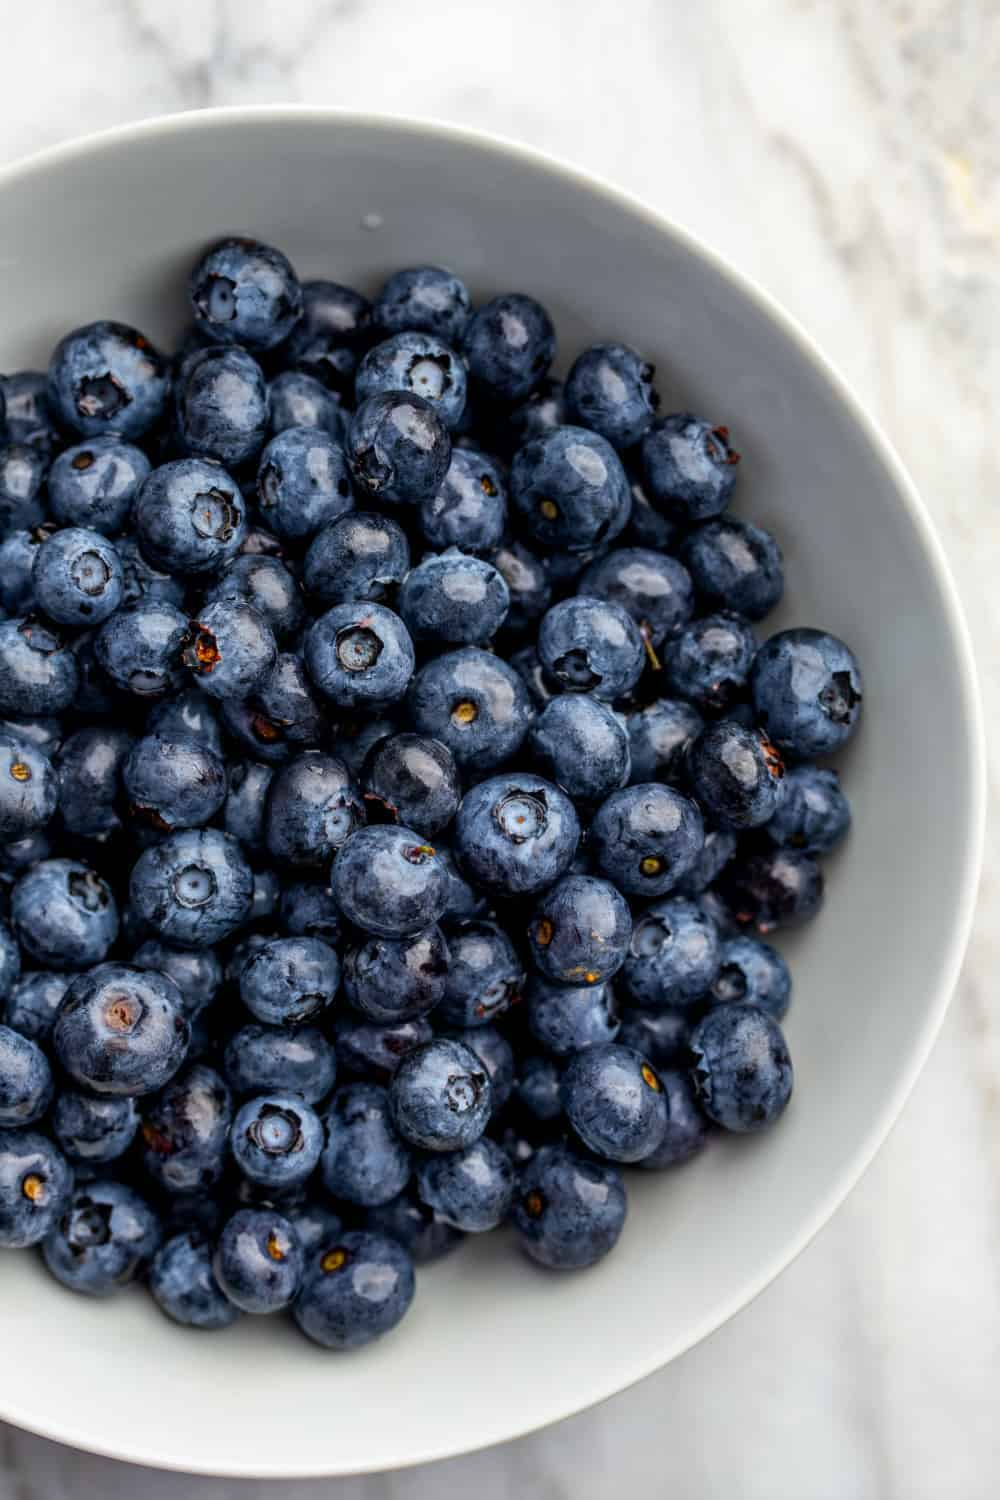 Fresh blueberries in a white bowl on a marble surface